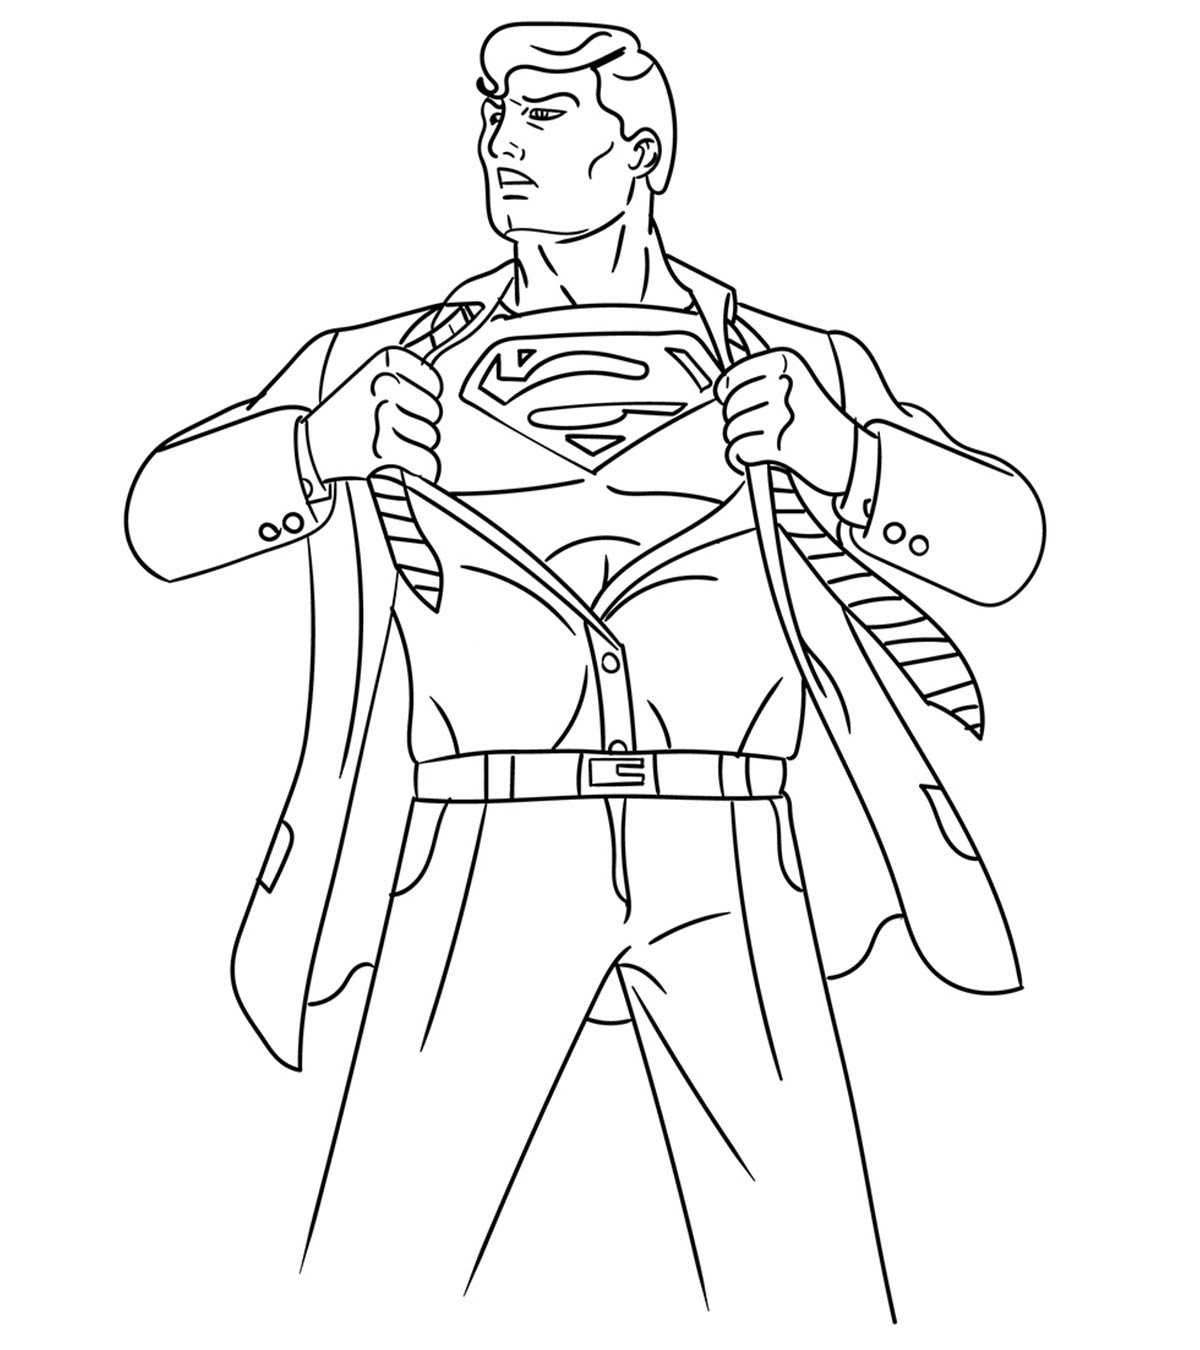 superman coloring pages images - photo#22